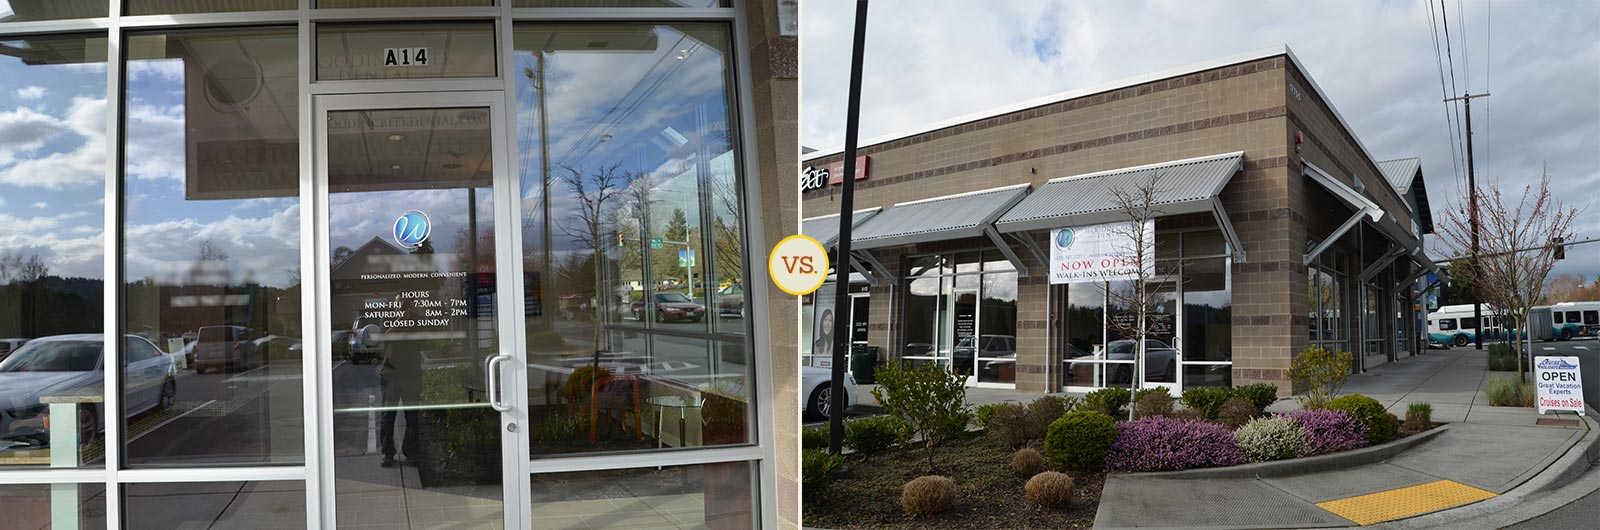 Side-by-side comparison of good and bad dental building photos